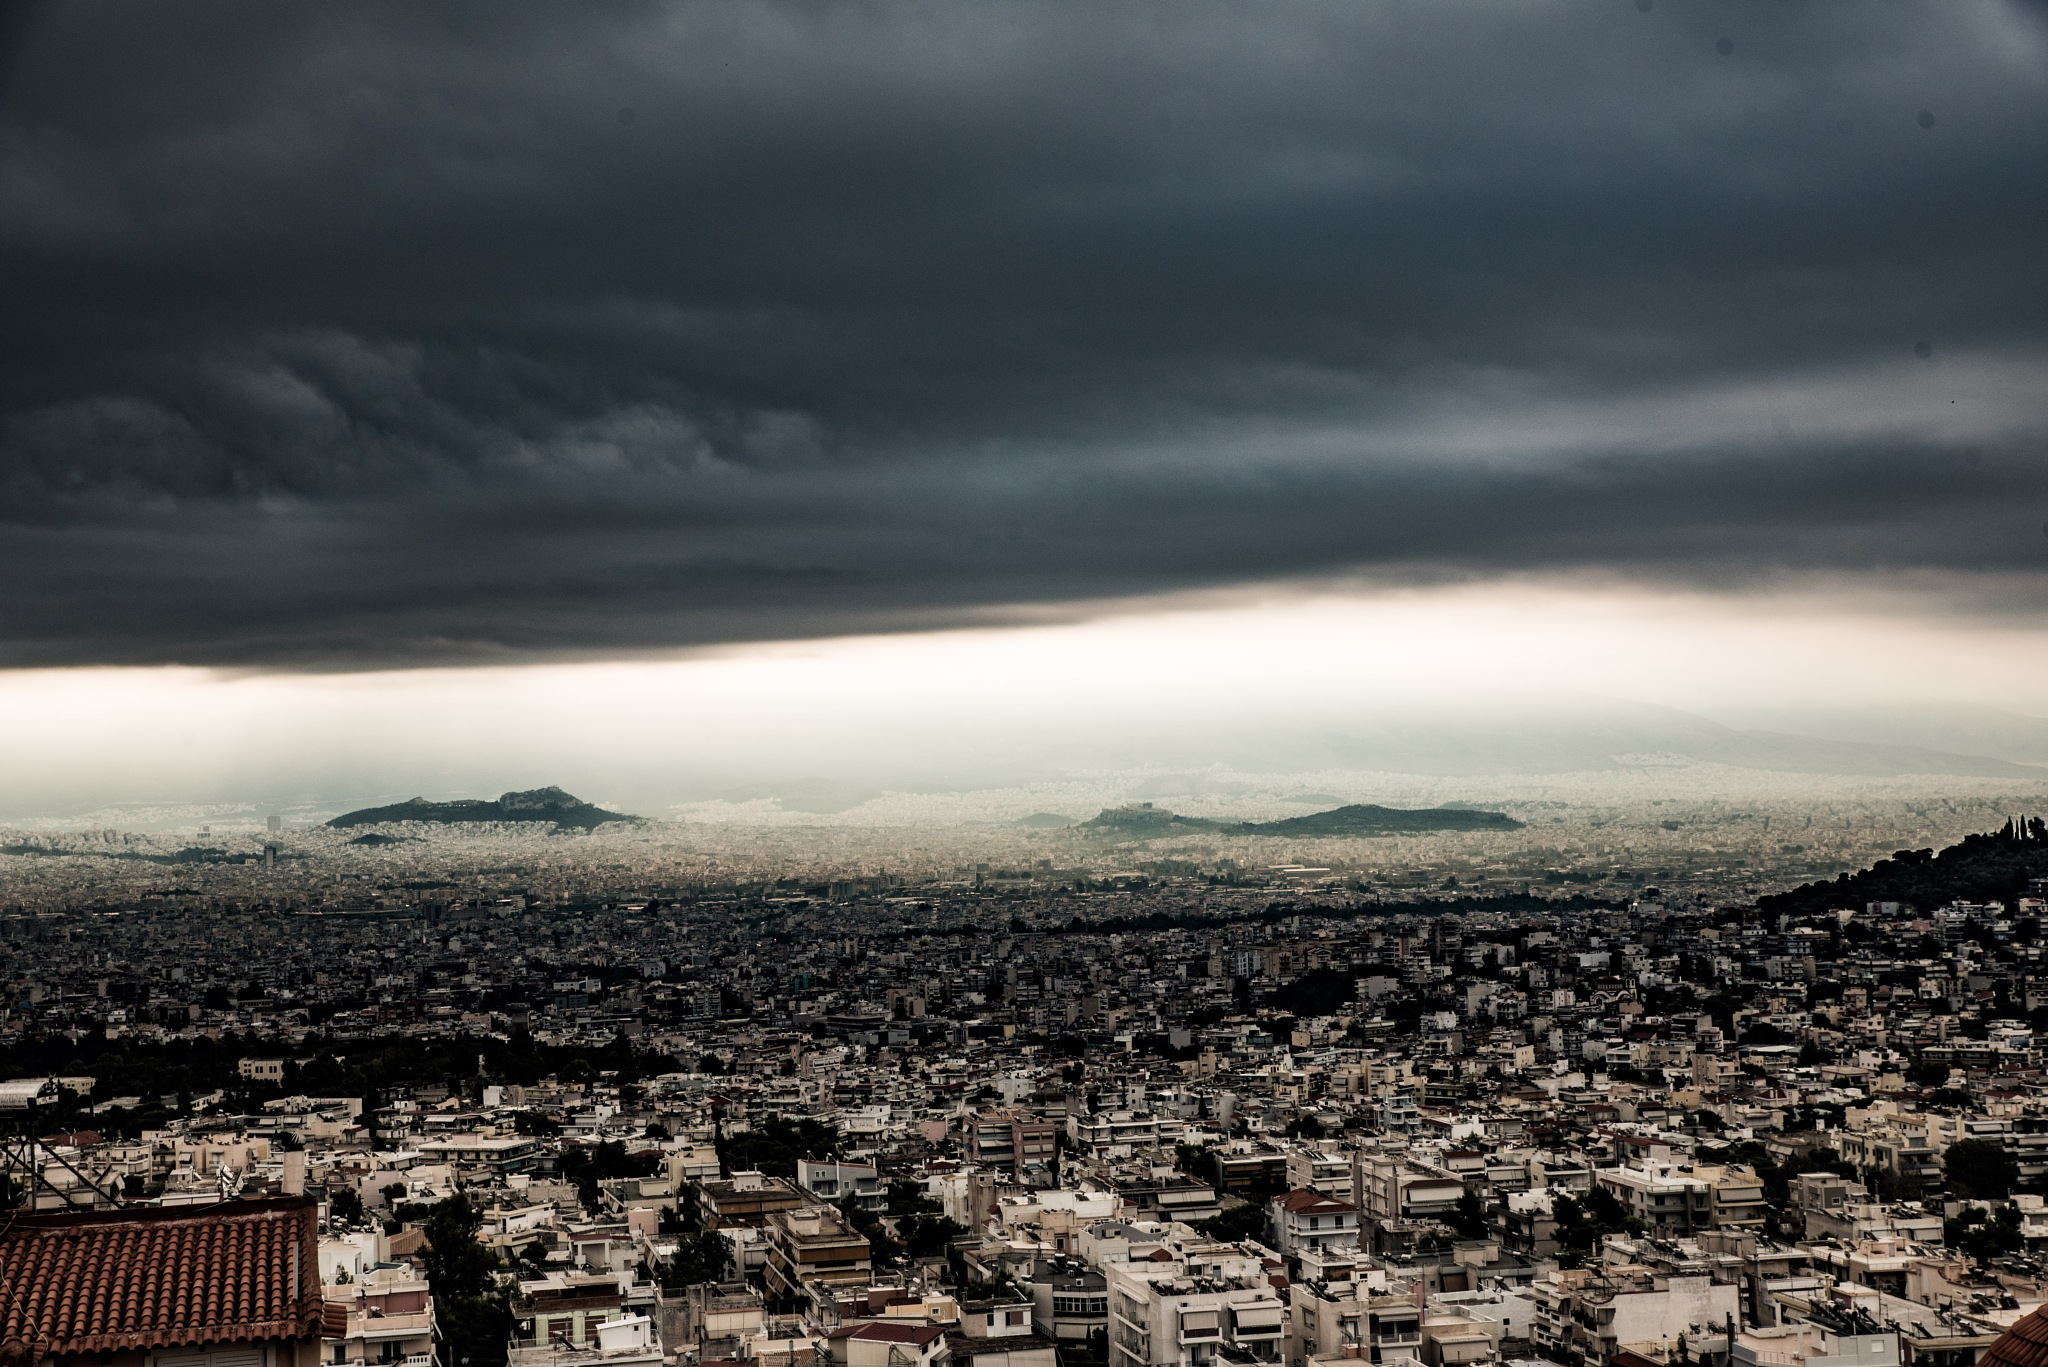 Athens, before rain by Makis